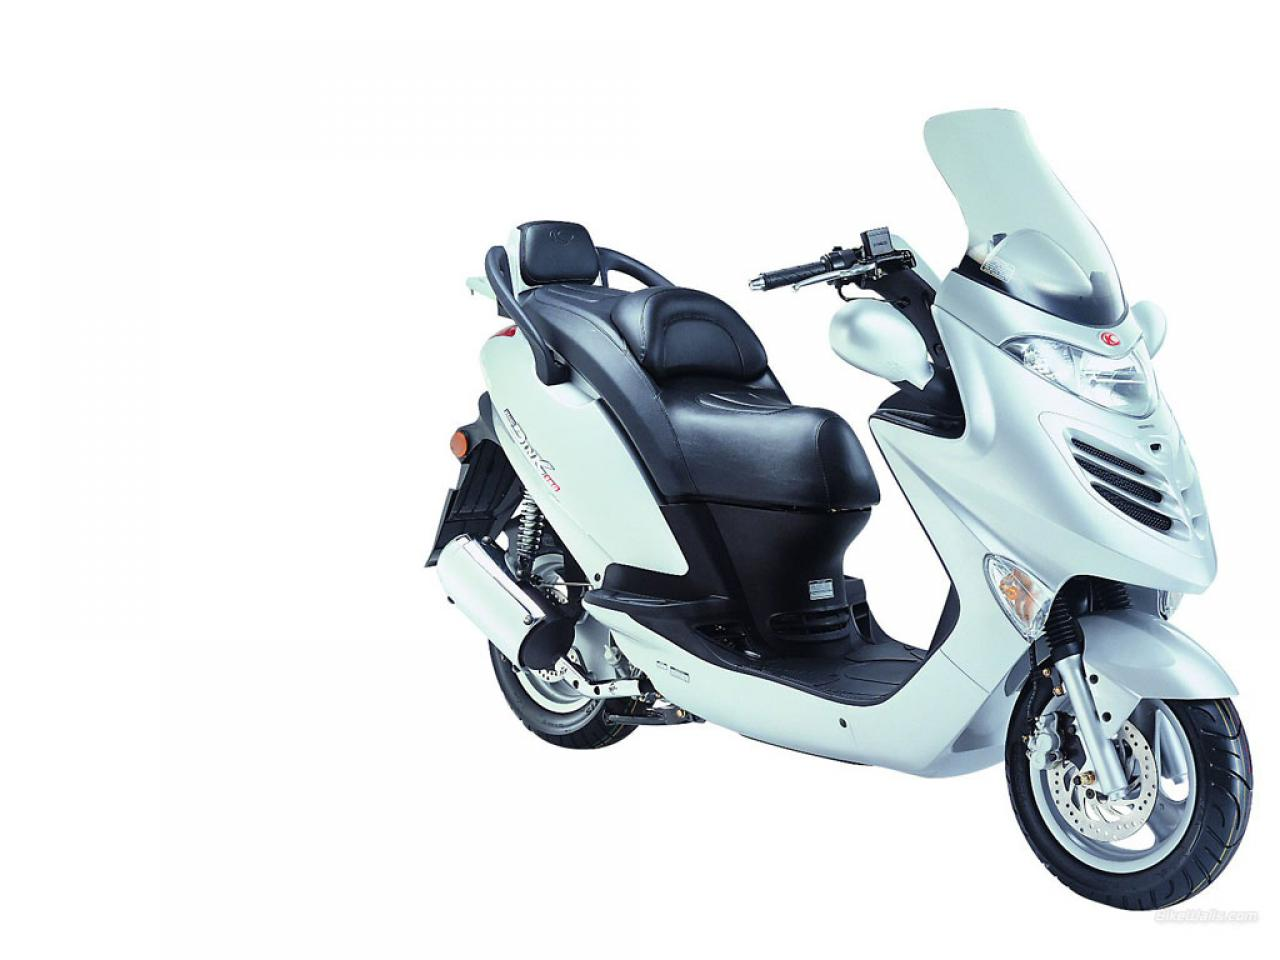 Kymco dink photo - 6